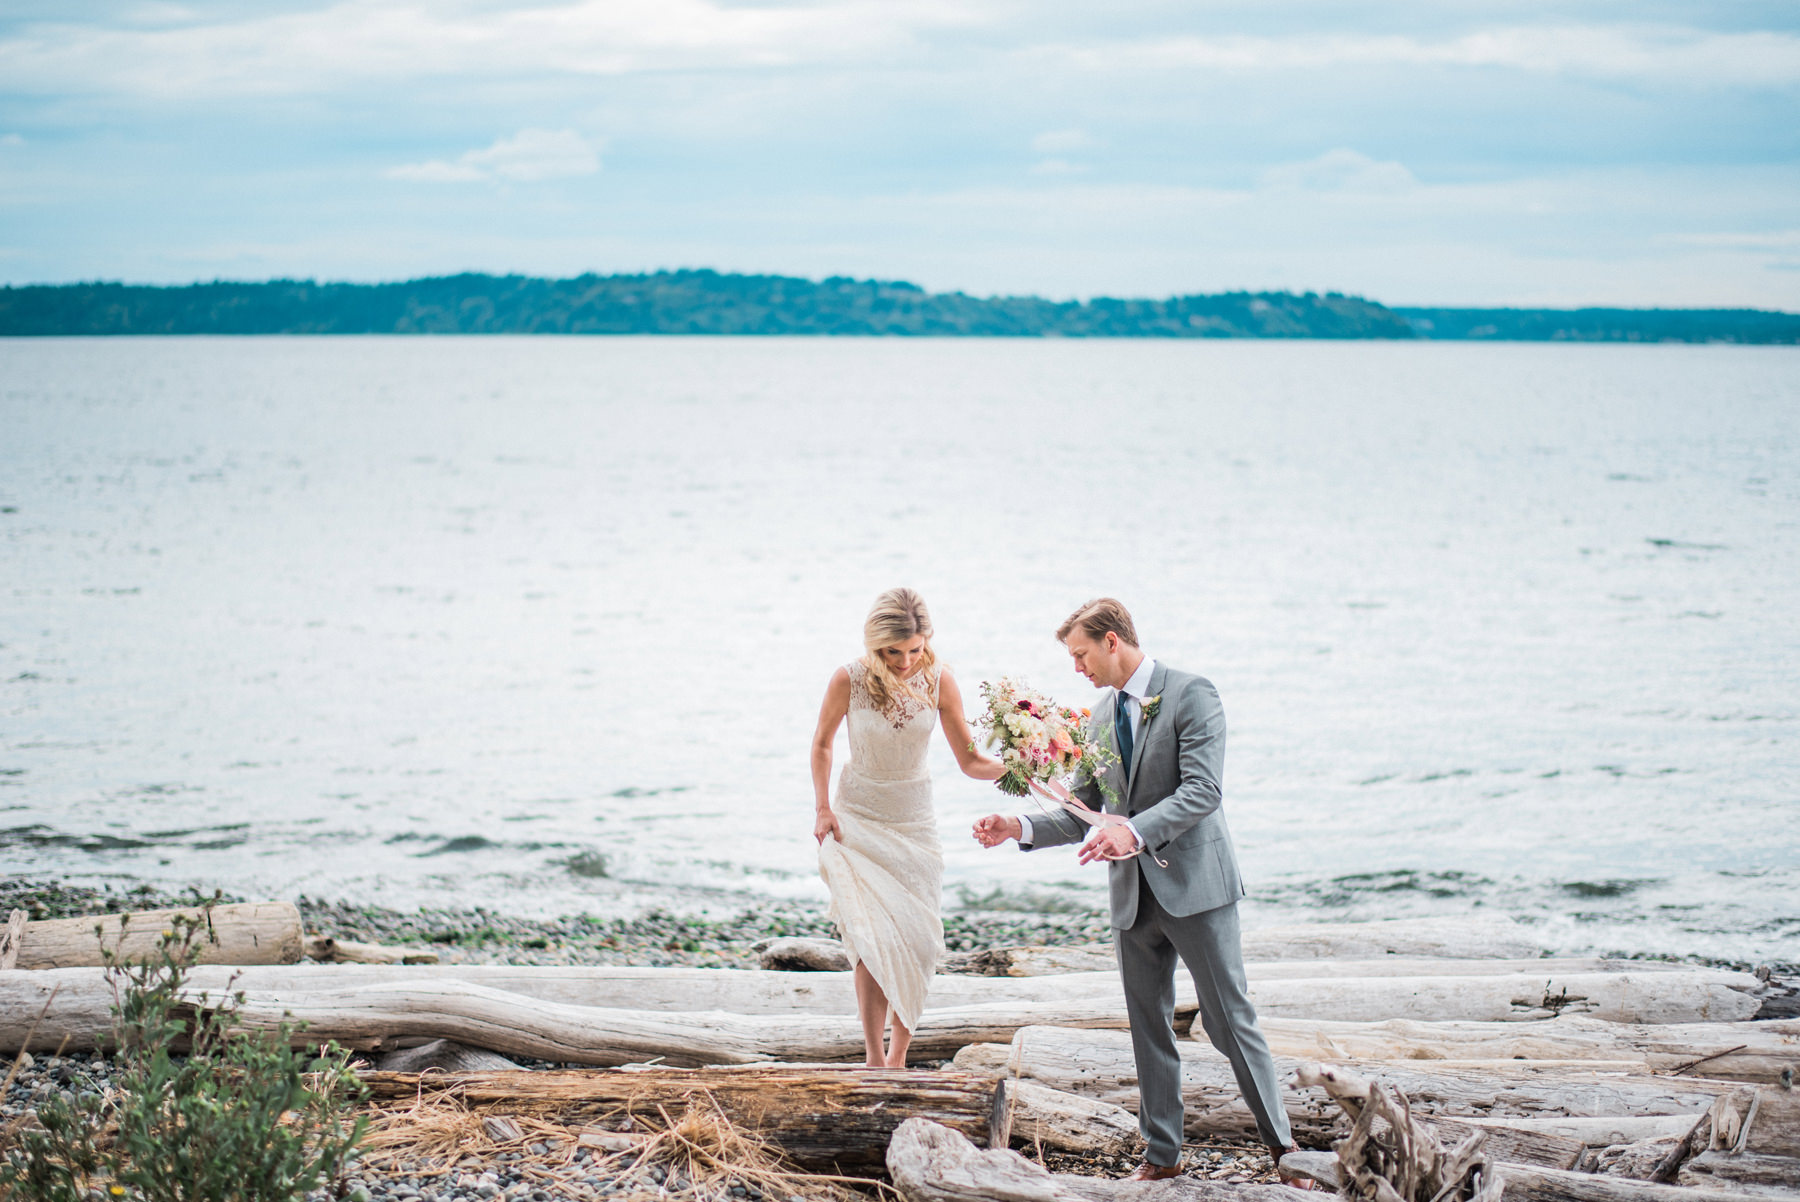 183-wedding-couple-walking-on-driftwood-holding-flowers-by-floret-floral.jpg